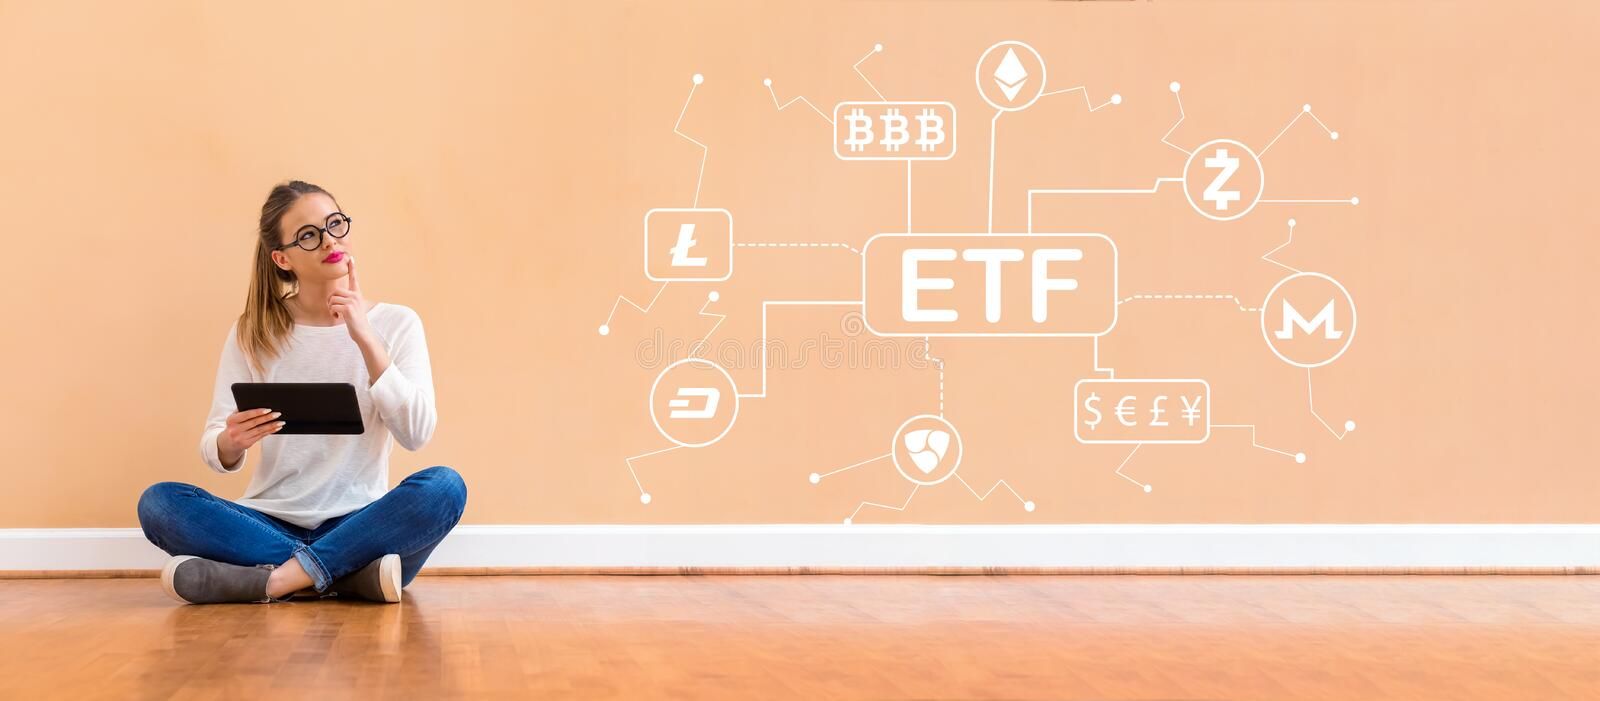 Cryptocurrency ETF theme with woman using a tablet. Cryptocurrency ETF theme with young woman holding a tablet computer stock photography